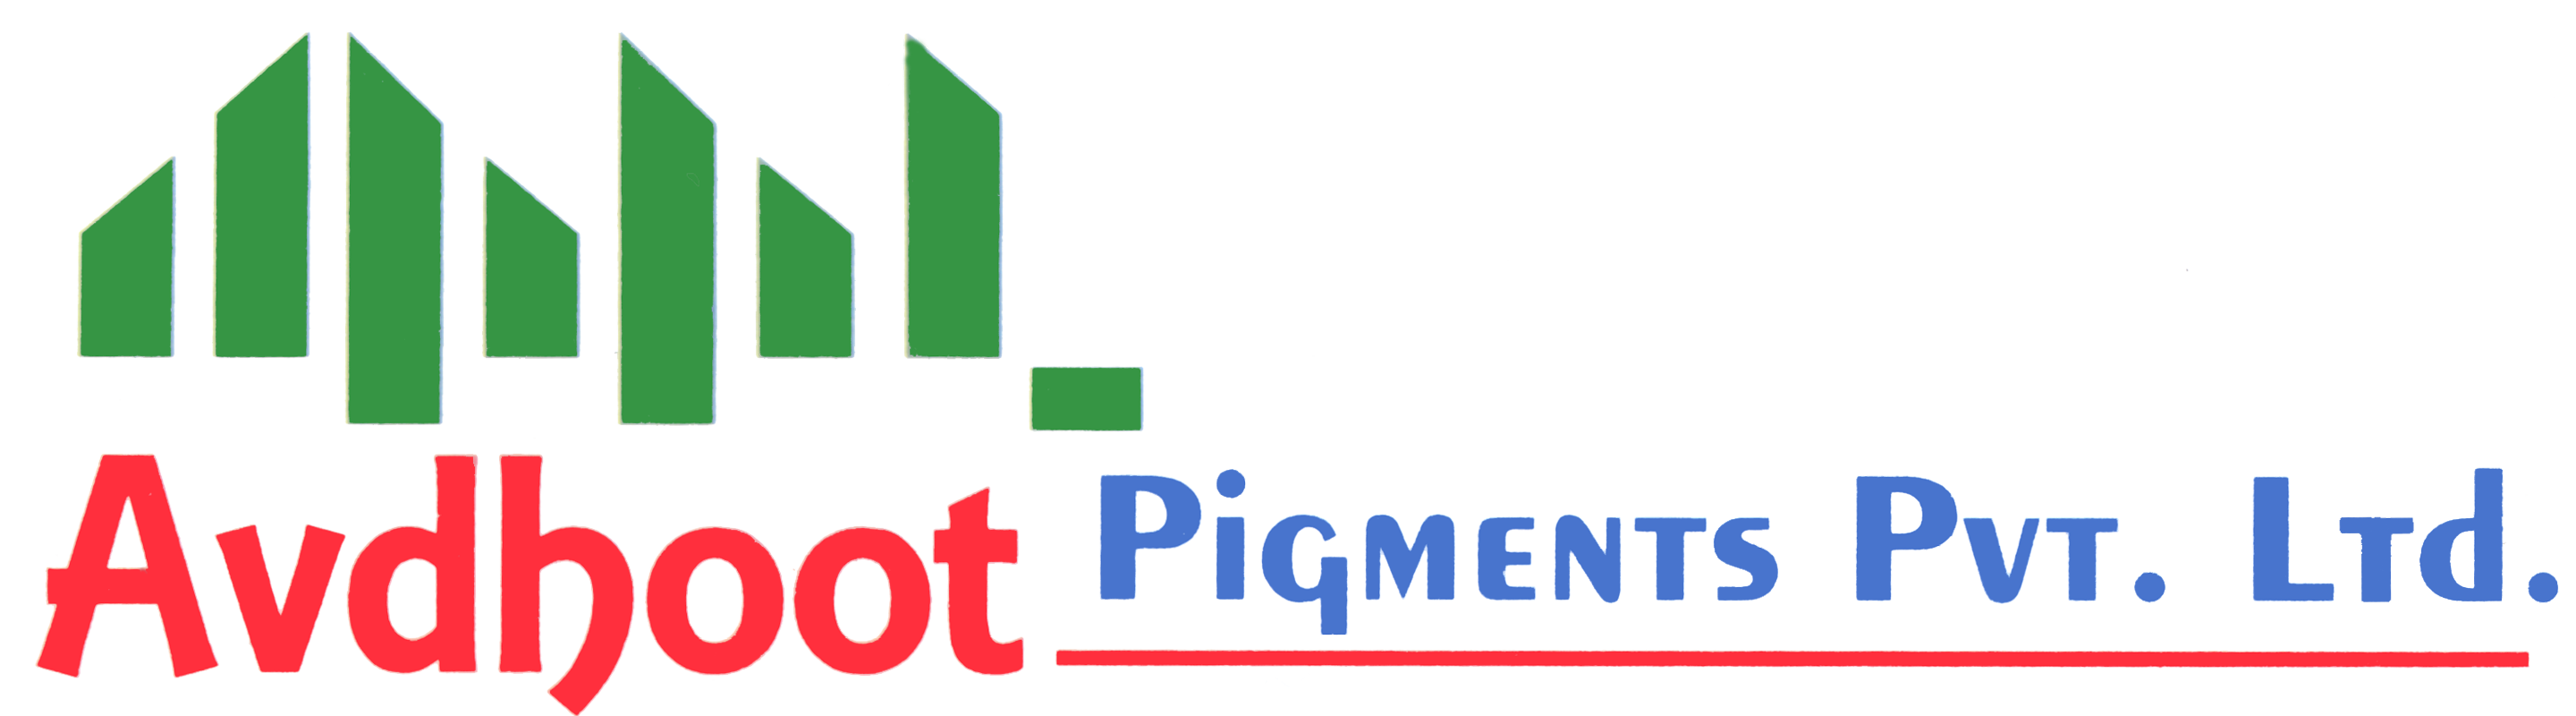 Avdhoot Pigments Pvt. Ltd.